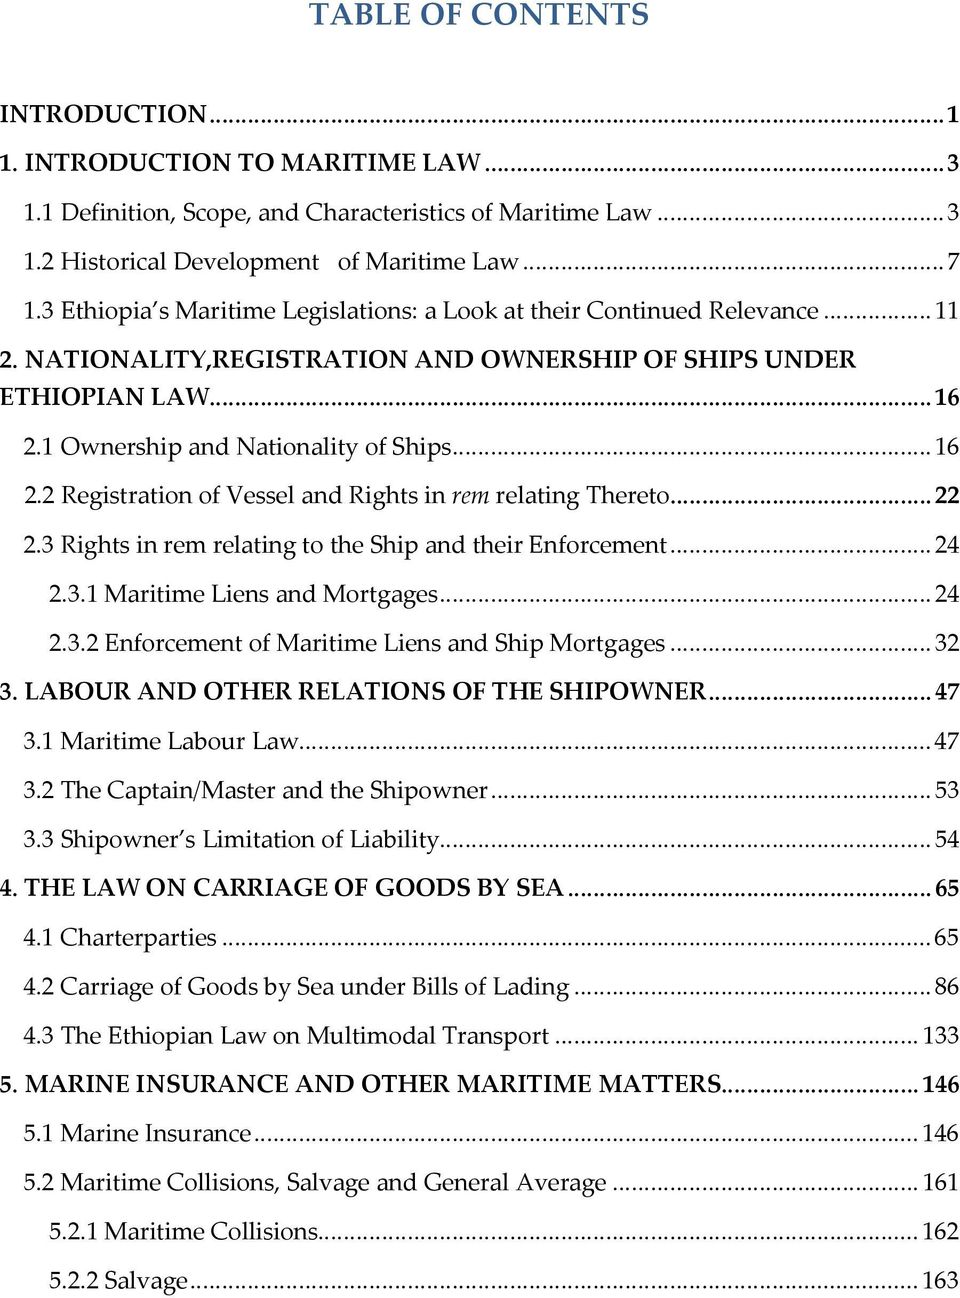 maritime law teaching material - pdf